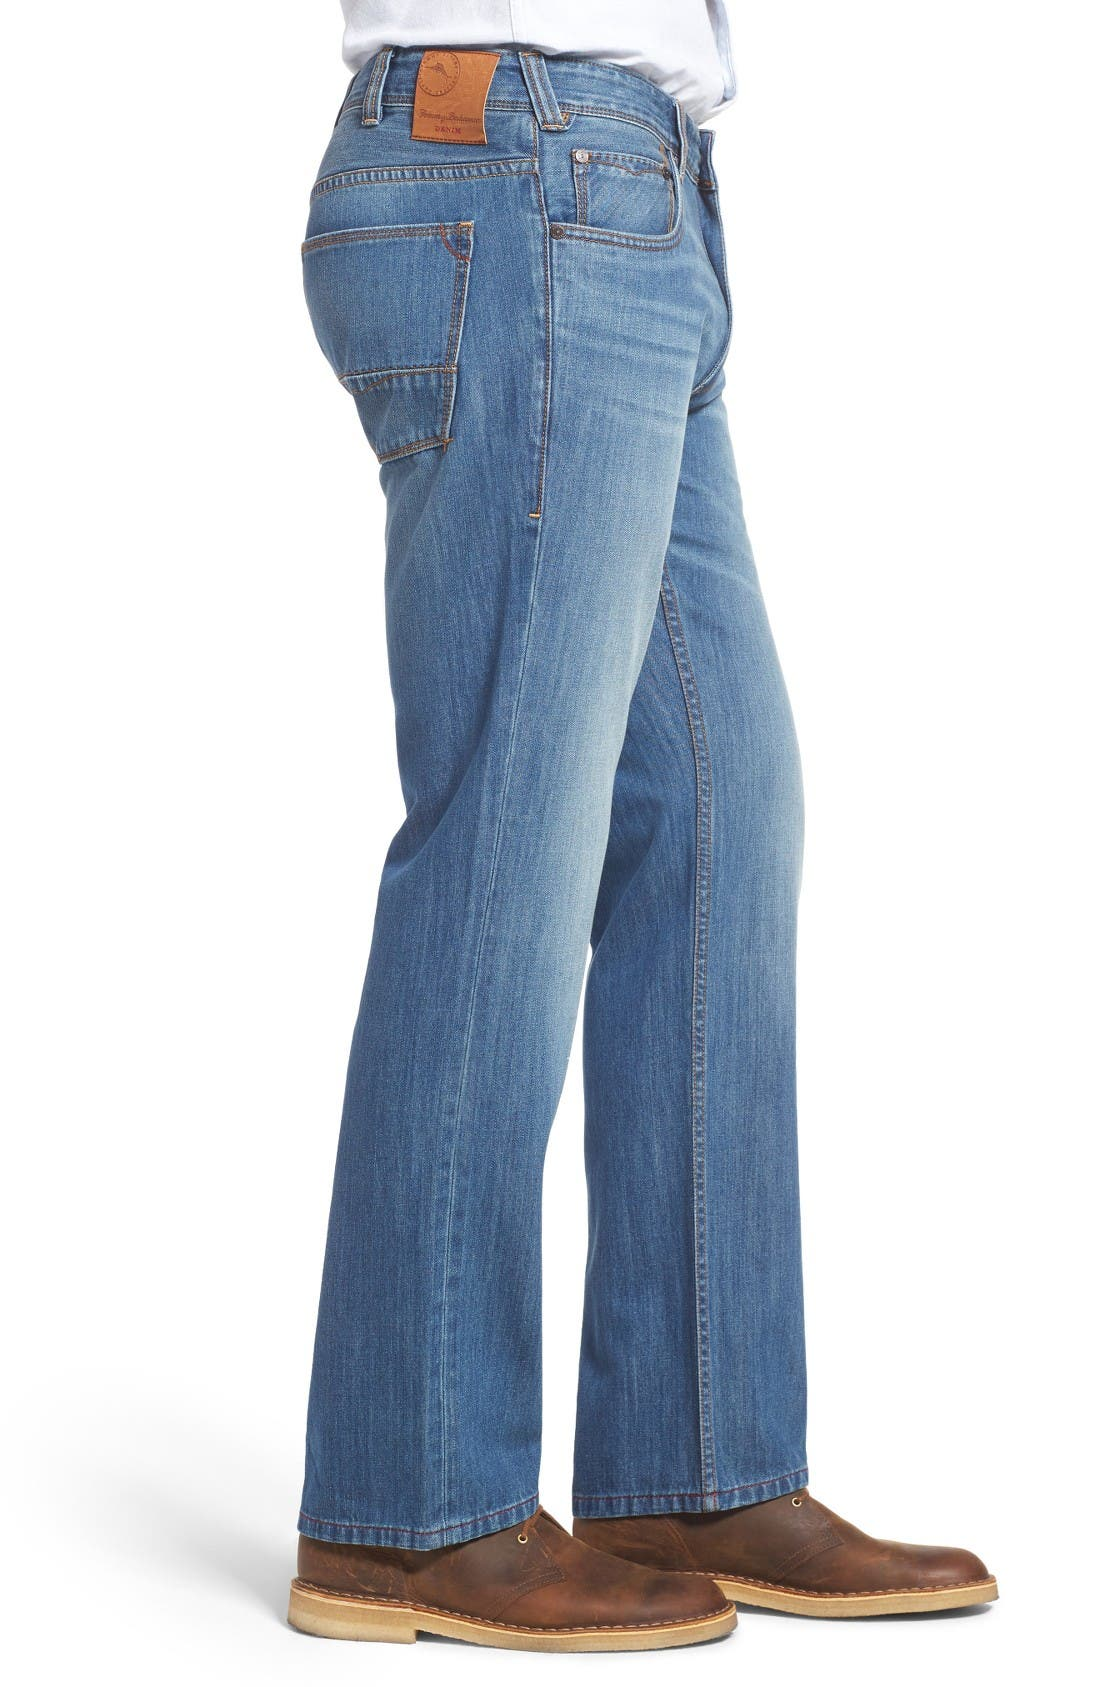 Barbados Straight Leg Jeans,                             Alternate thumbnail 3, color,                             Light Indigo Wash